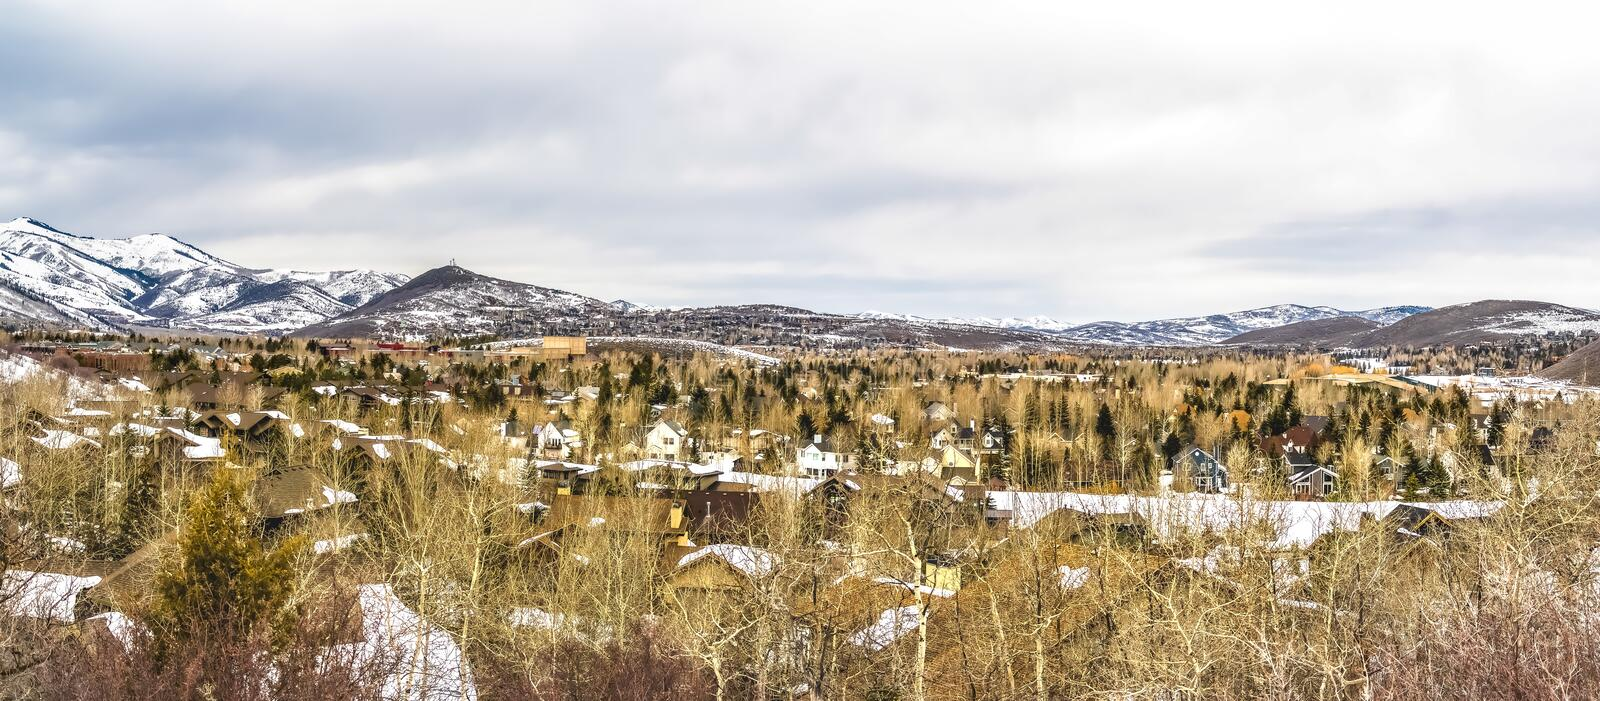 Panoramic view of houses and majestic mountain against cloudy sky in winter. Conifers and trees with leafless branches grows around the residential area royalty free stock image